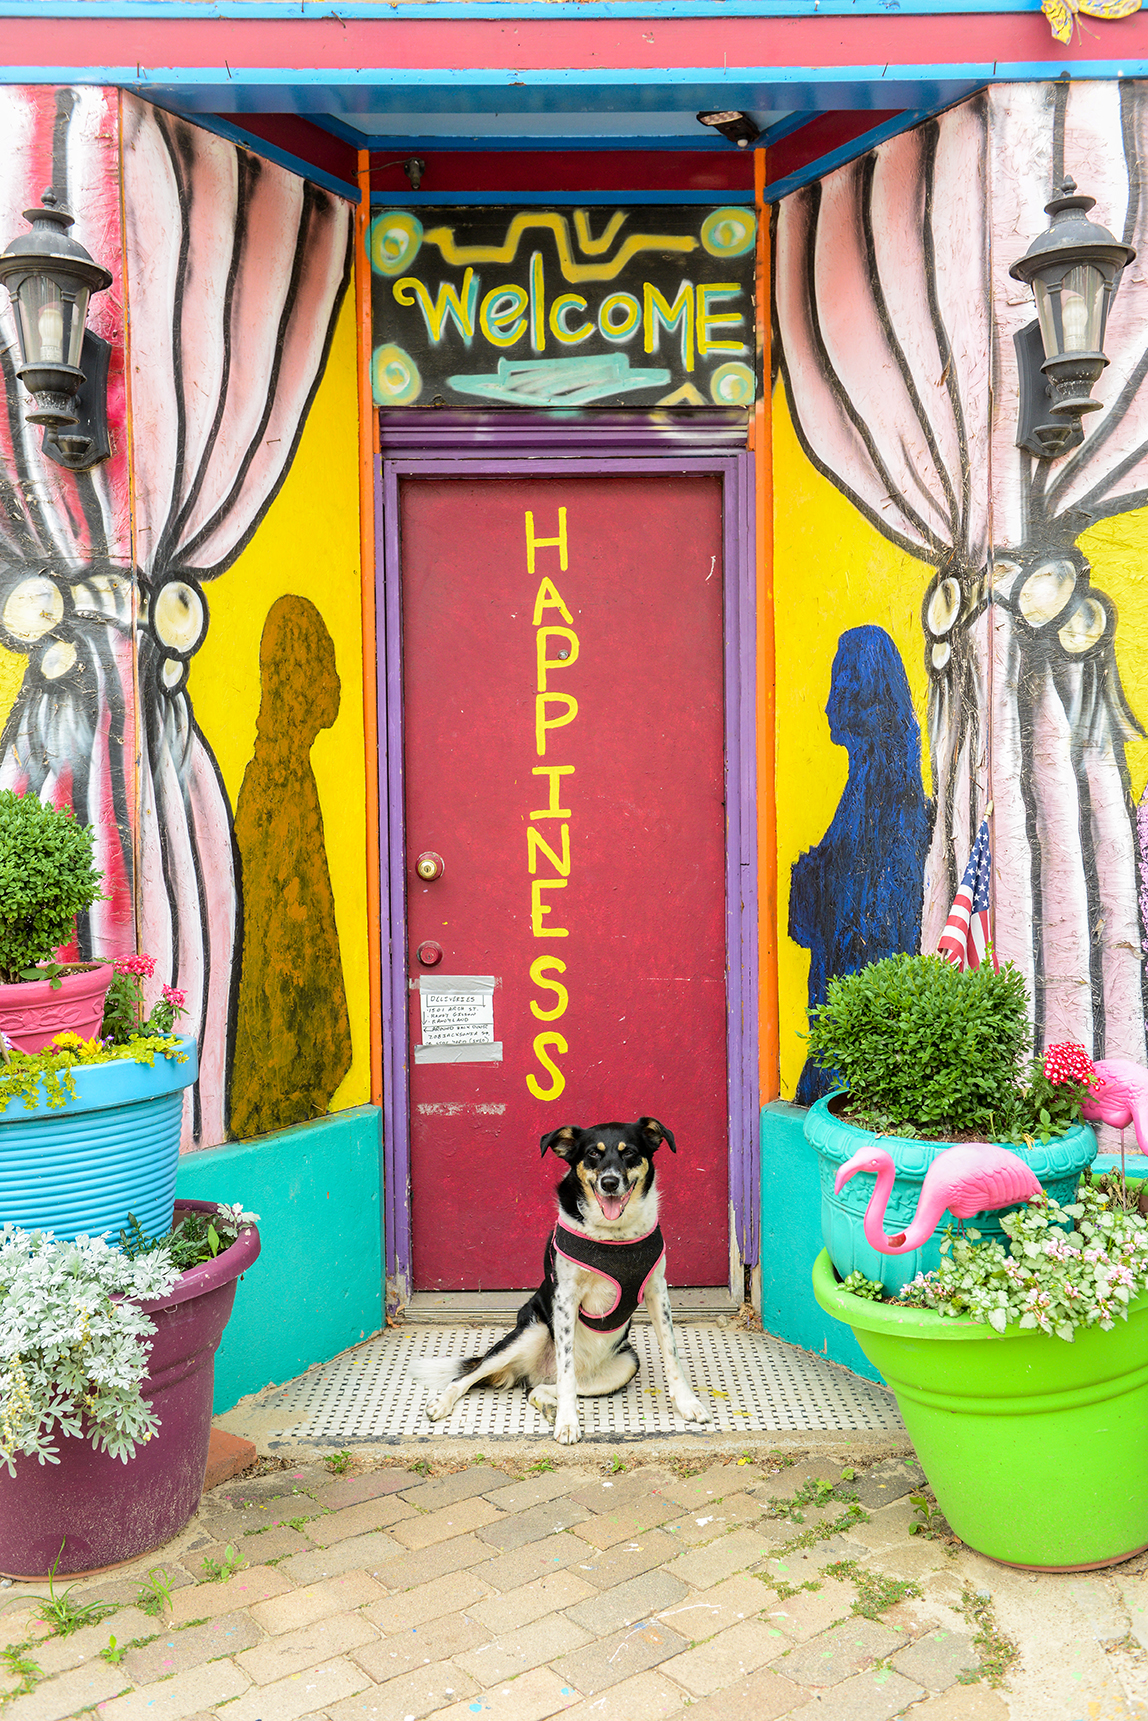 A Tourist In My Own City: Visiting Randyland & Pittsburgh Pride